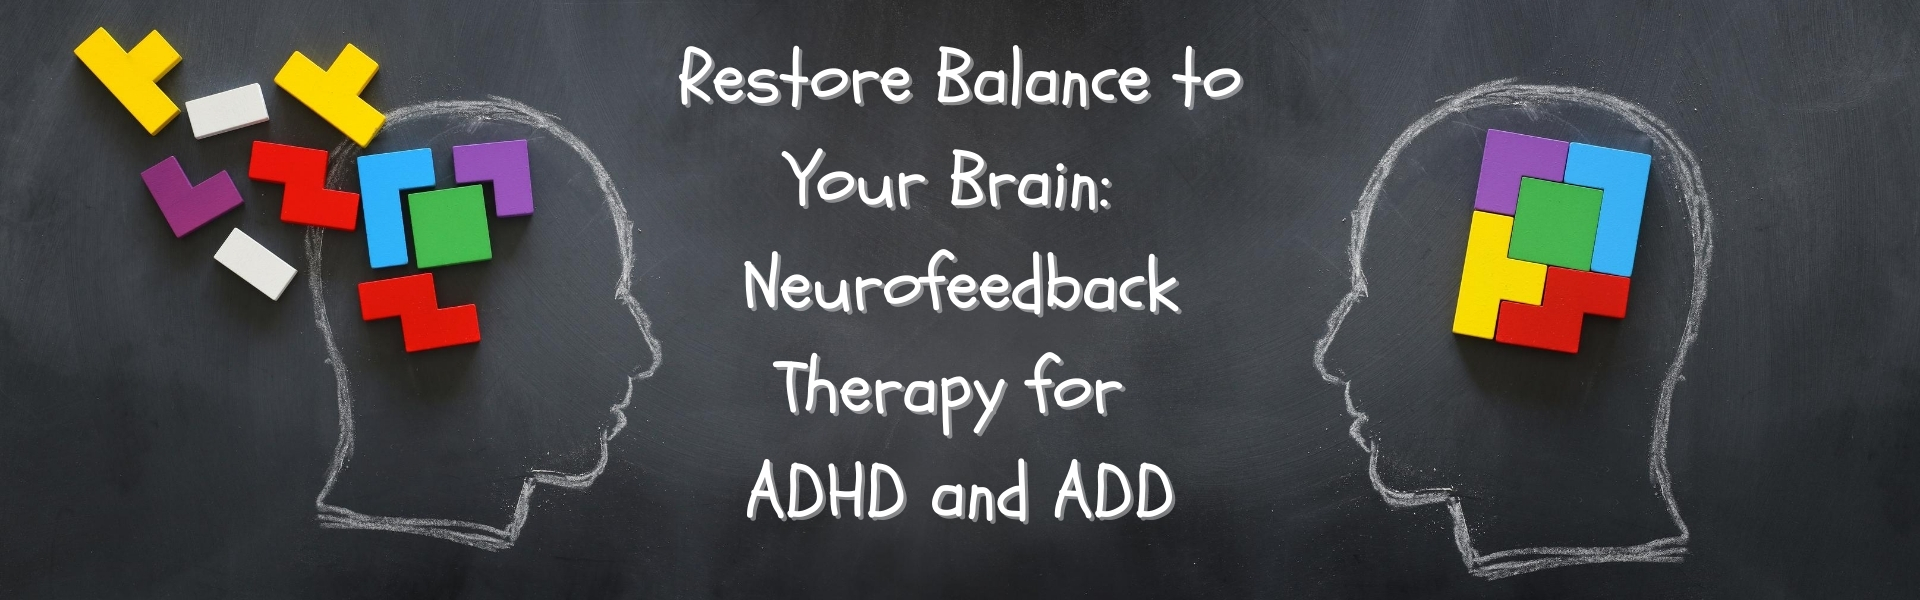 Neurofeedback therapy and ADHD